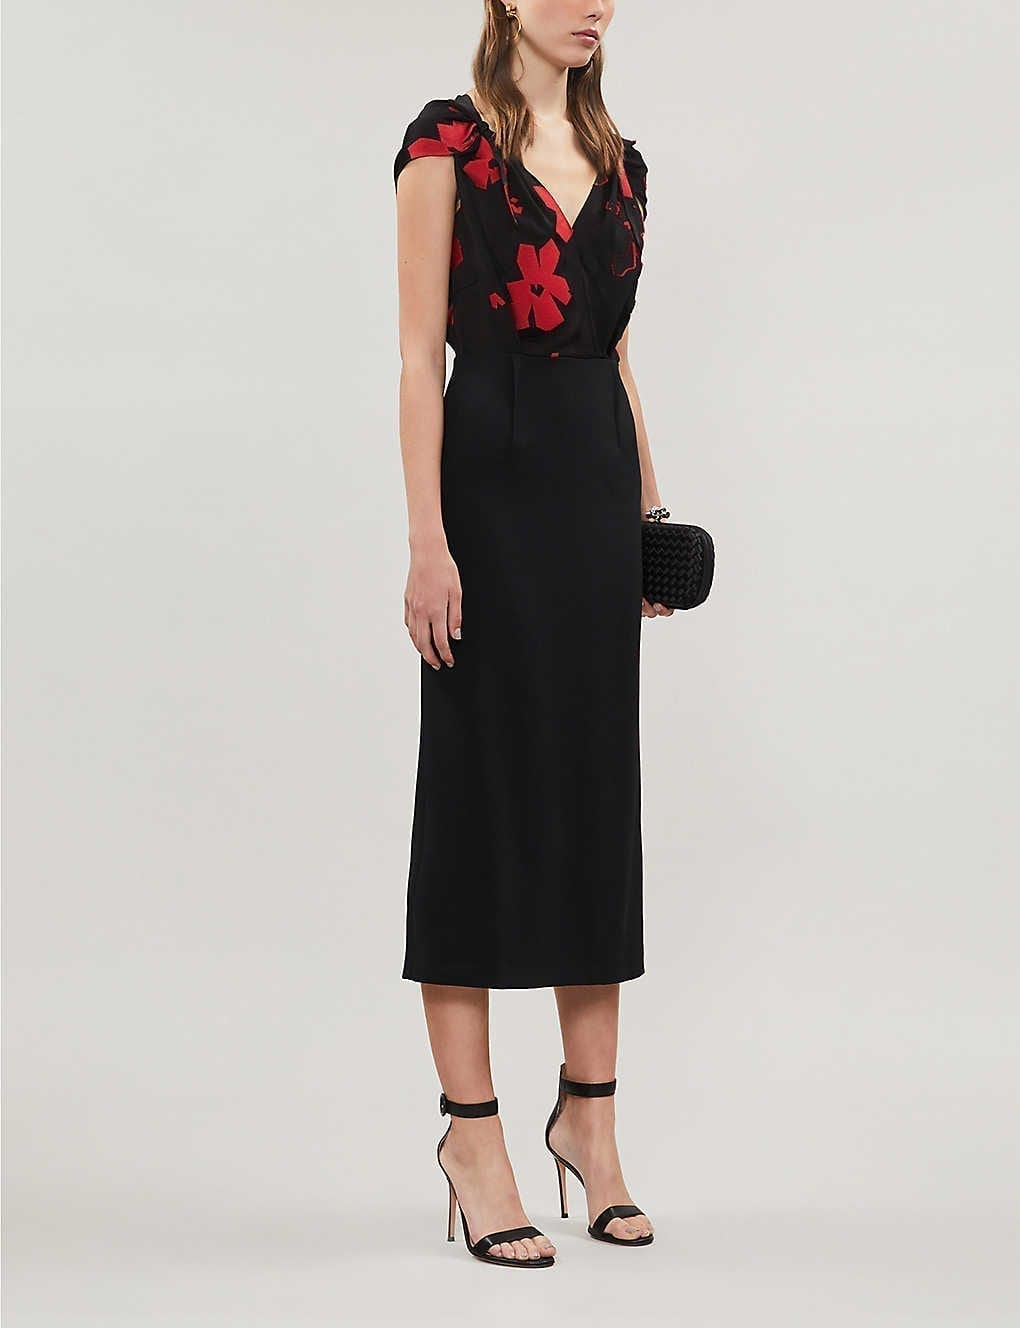 ROLAND MOURET Eclipse Floral-embroidery Crepe Midi Dress